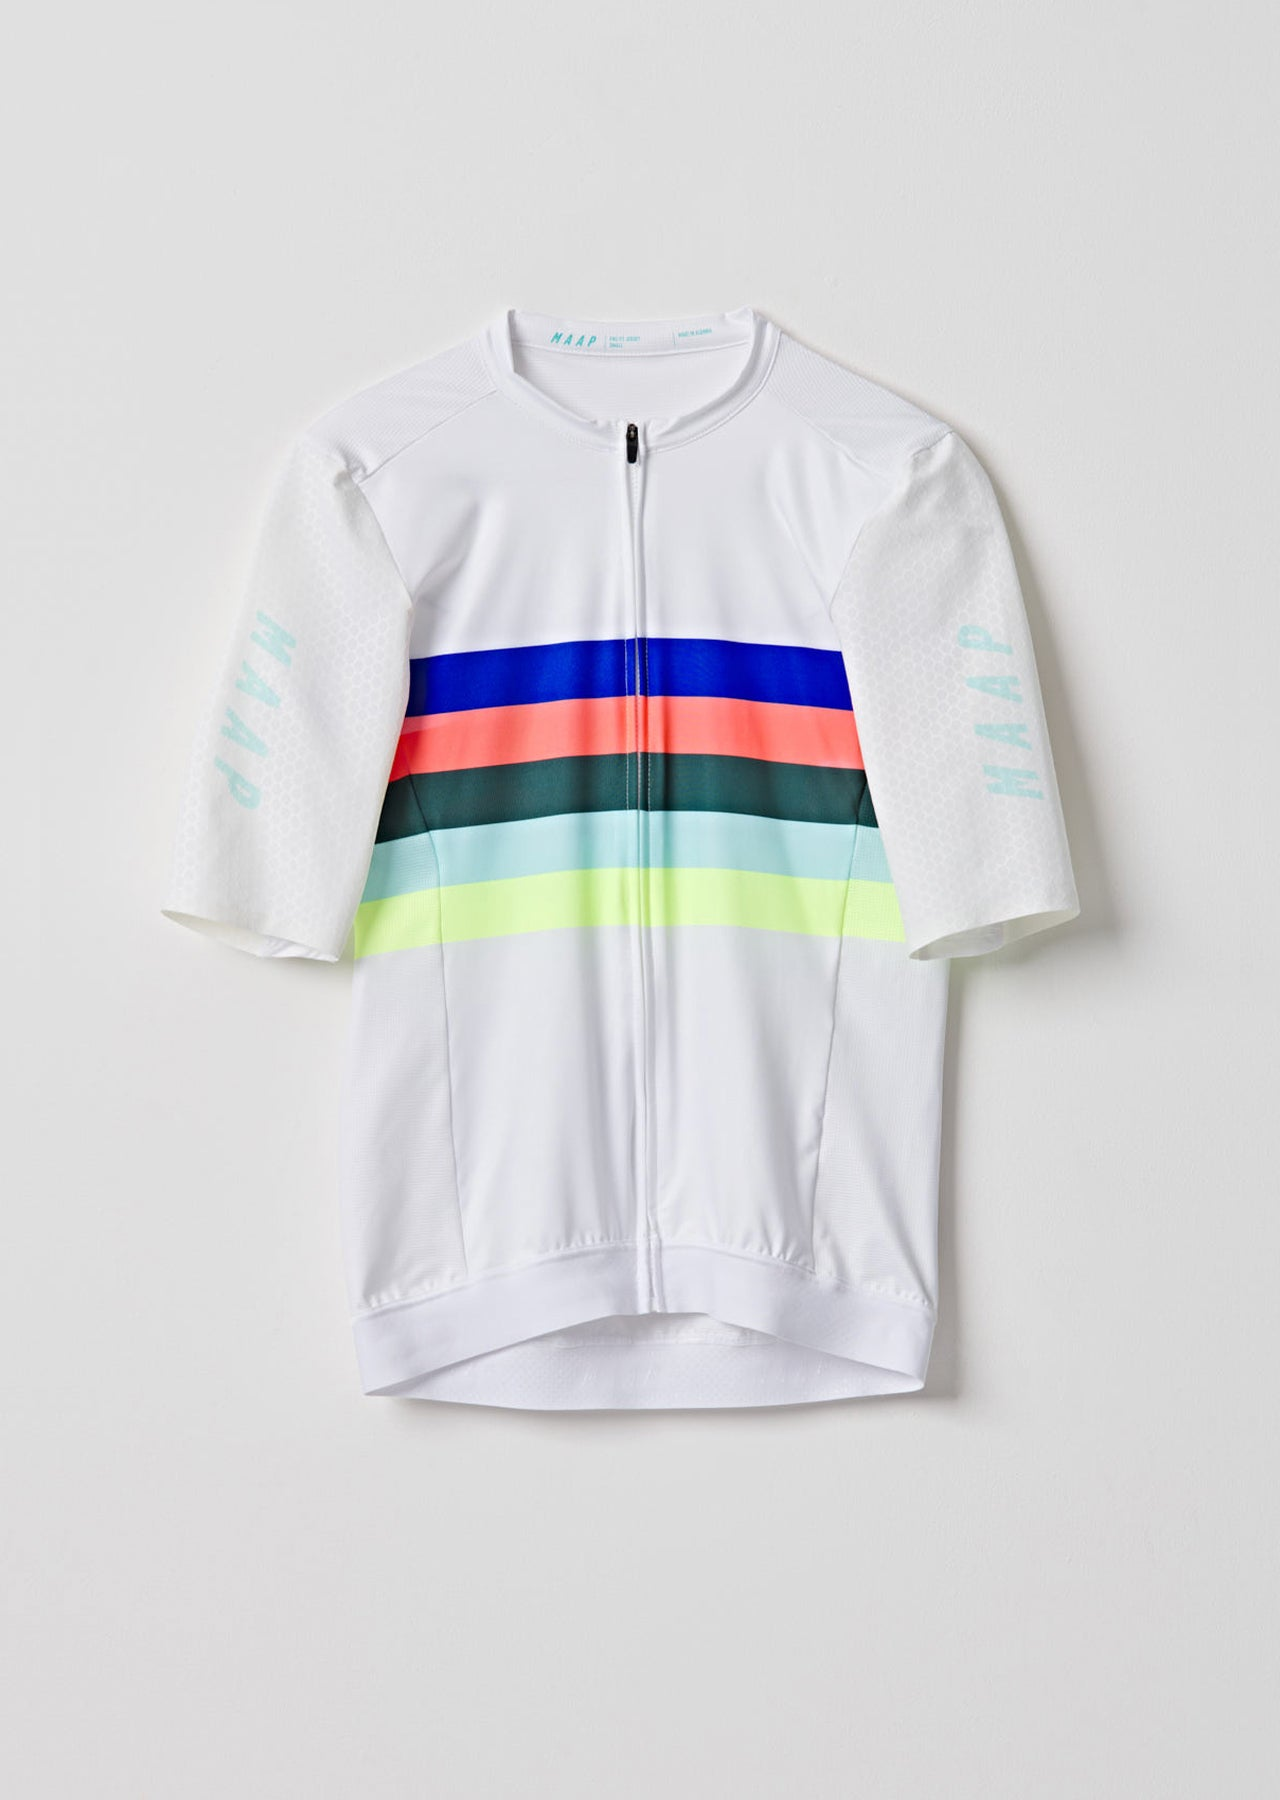 New World Pro Hex Jersey